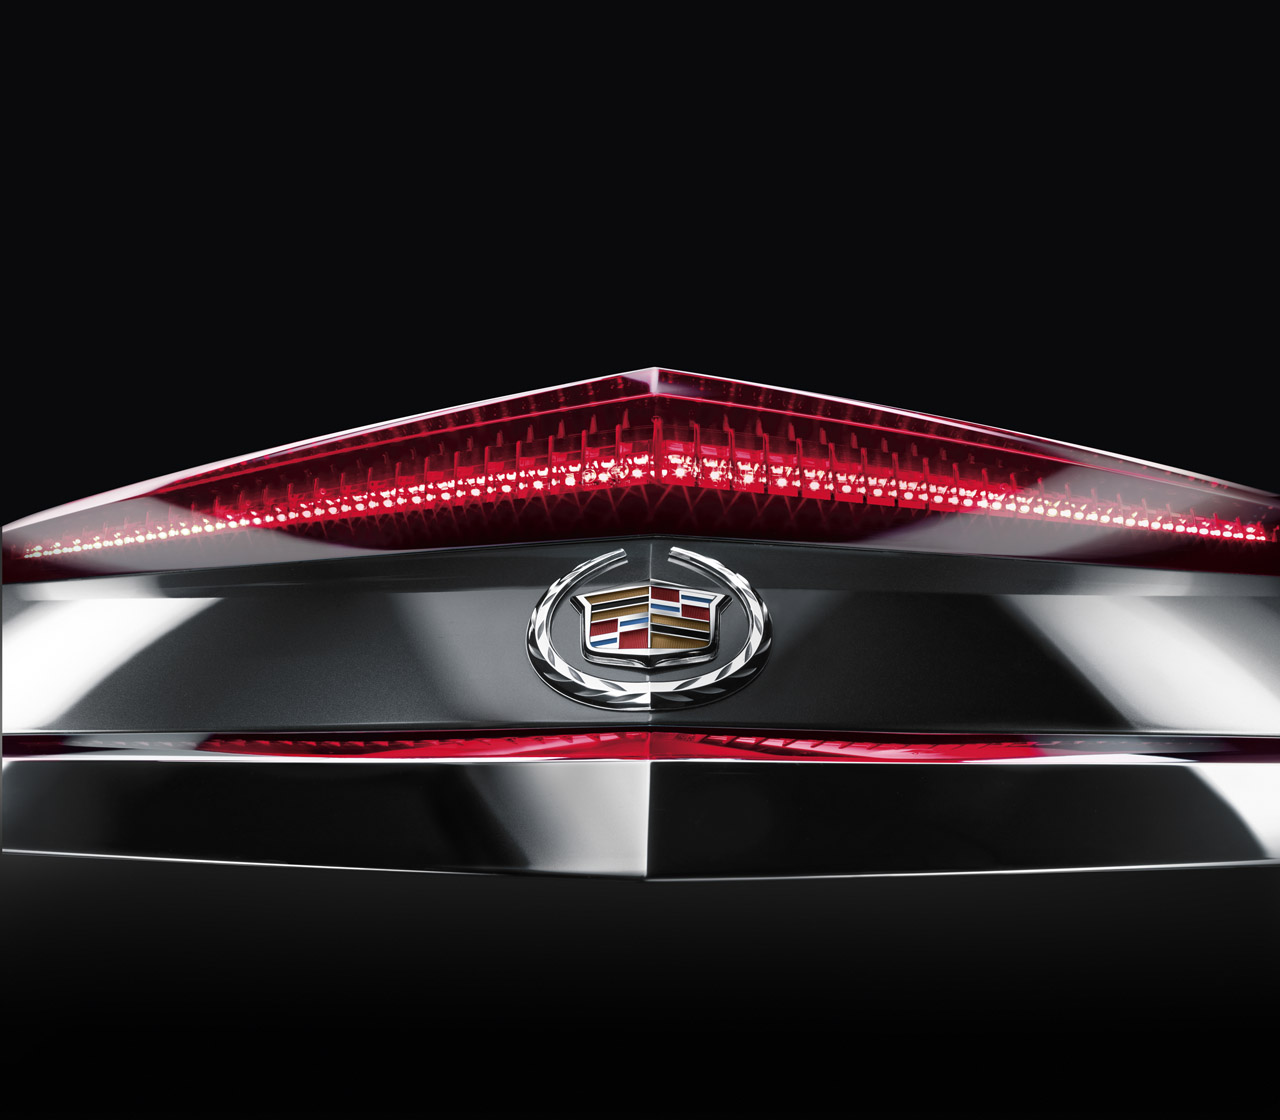 Cadillac V Series For Sale: 2012 Cadillac CTS To Launch Compact V-Series-like Touring Option